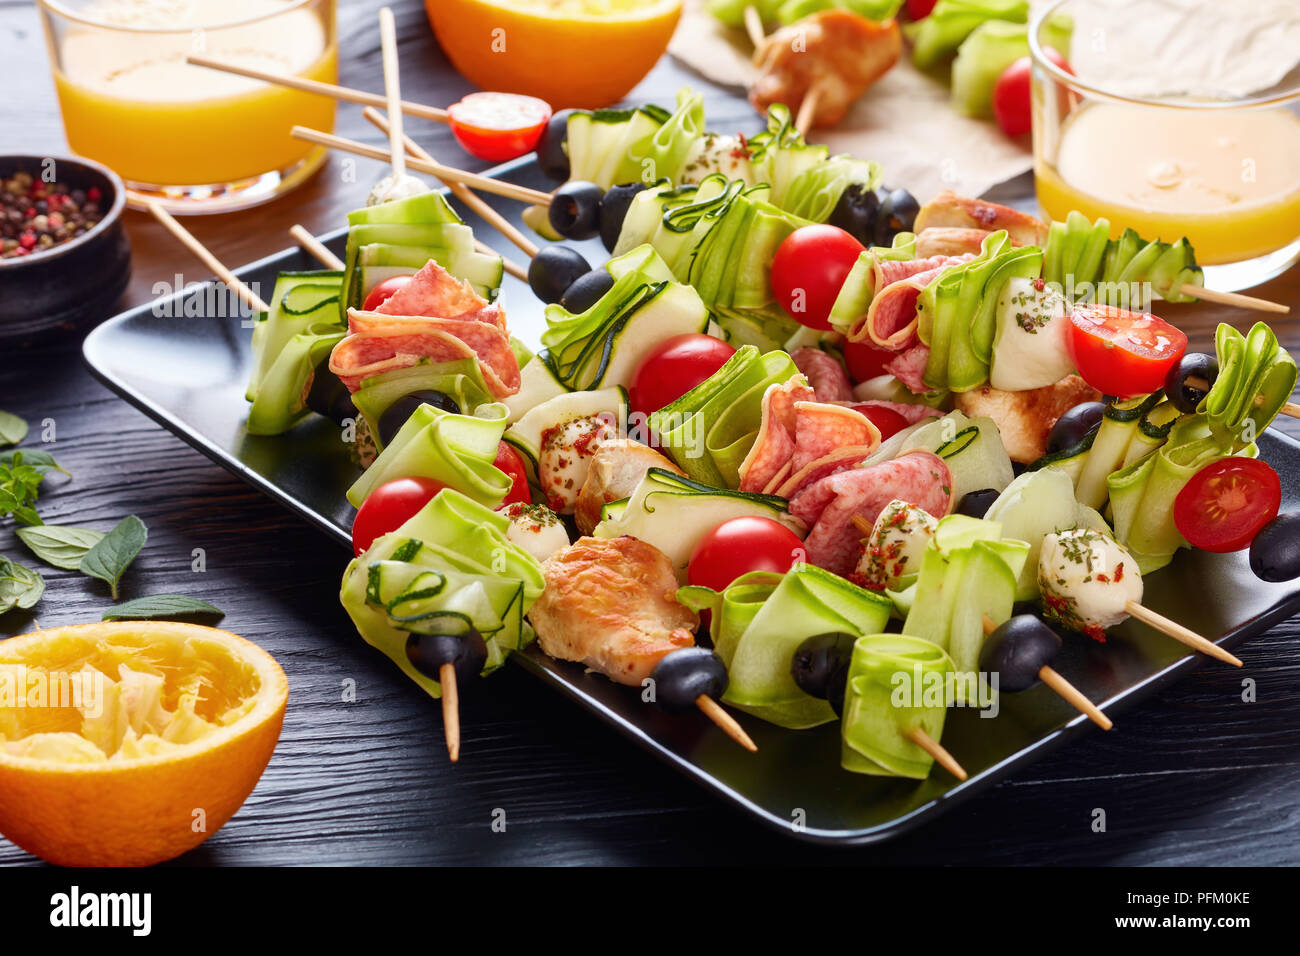 kebab on skewers with chicken meat, zucchini, tomatoes, mozzarella balls, salami slices, olives on a black plate on a wooden table with fresh orange j - Stock Image